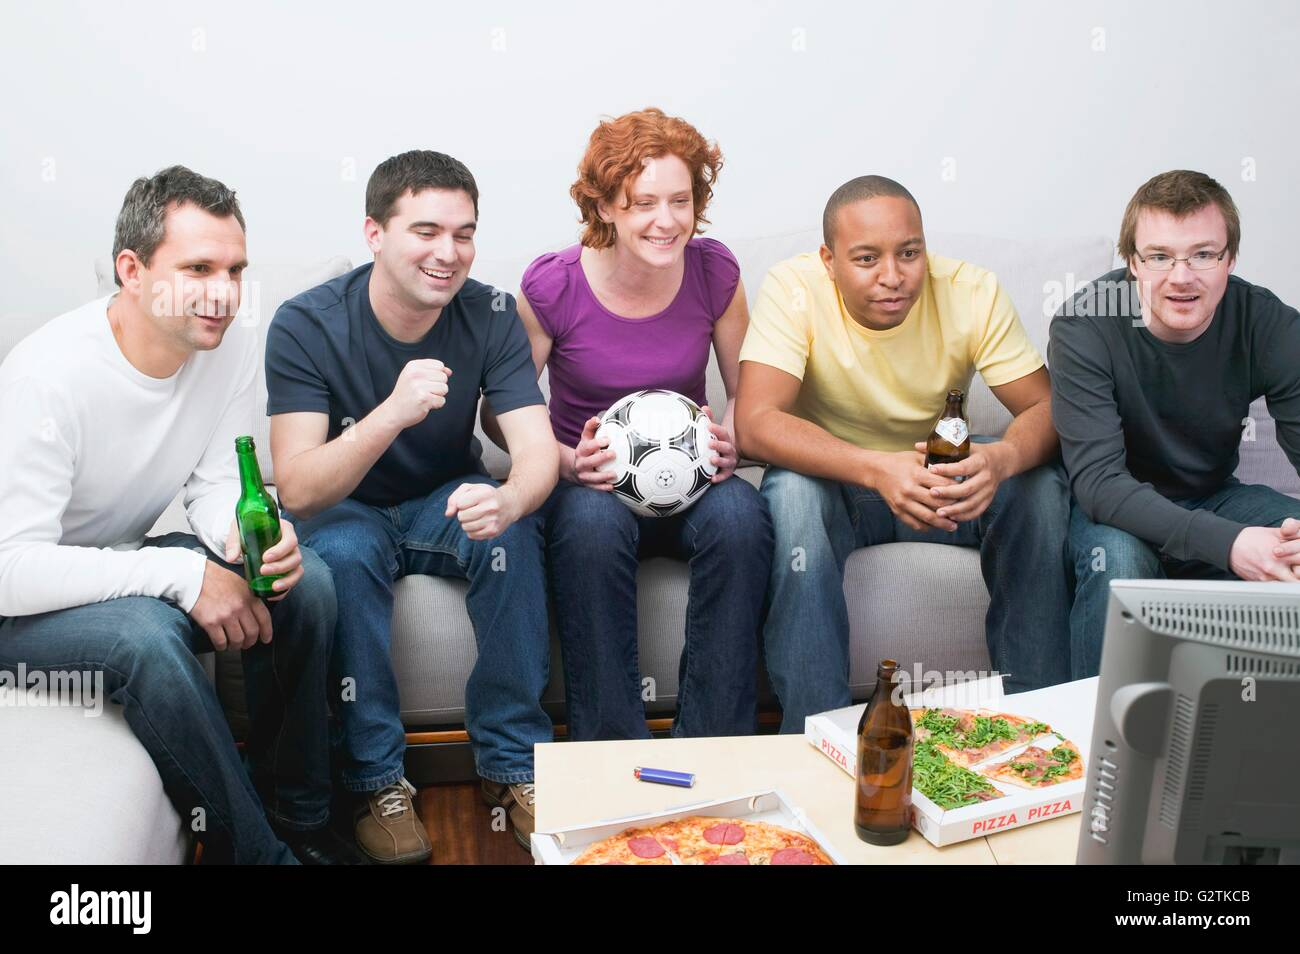 Friends with football, beer & pizza sitting in front of TV - Stock Image